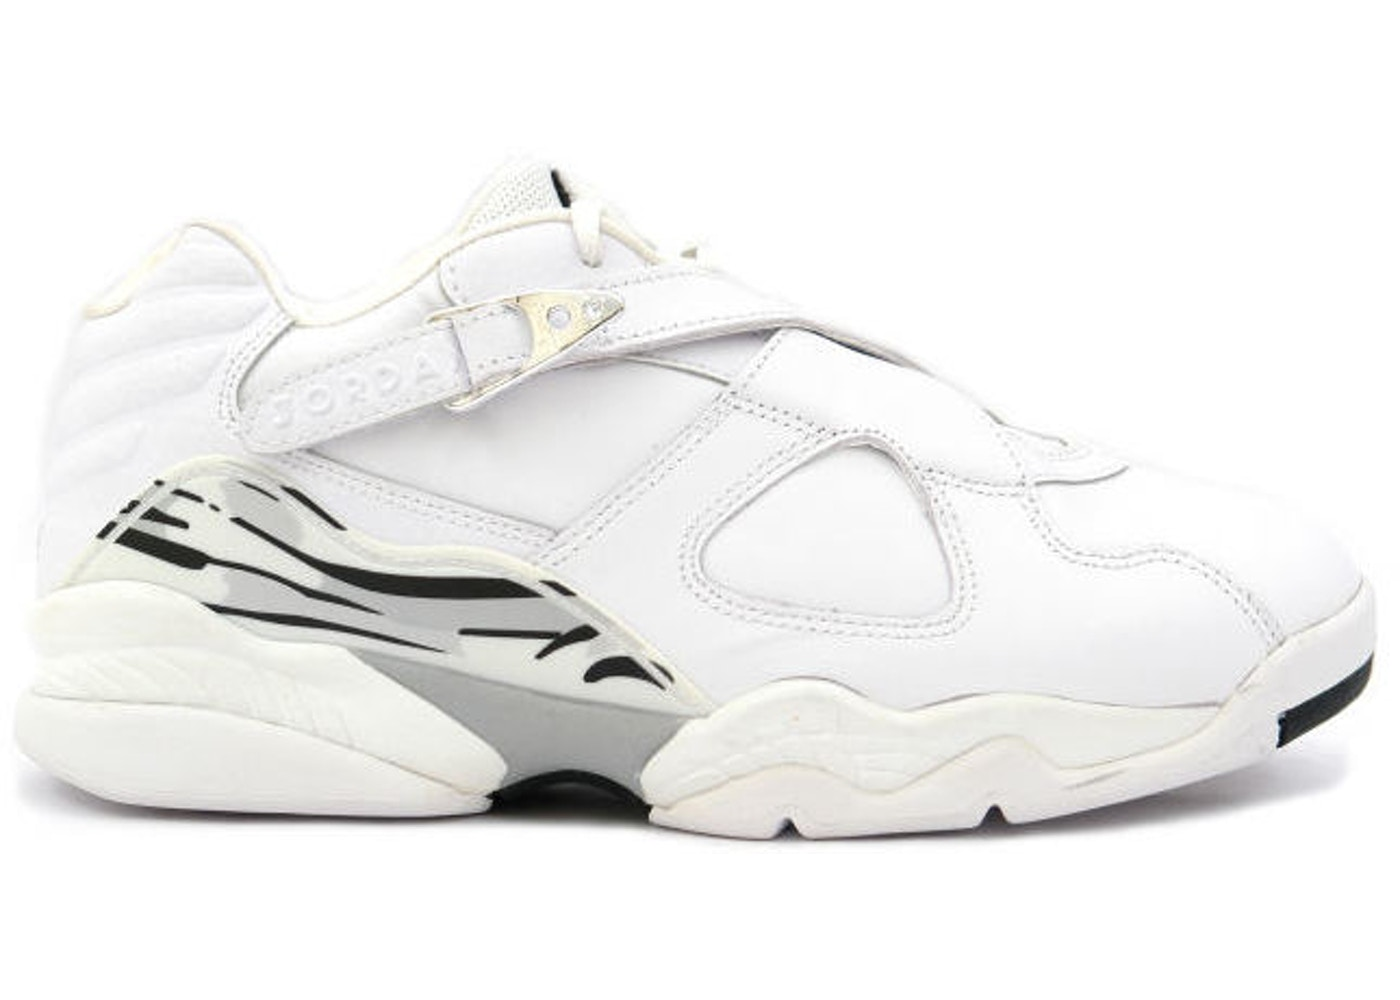 brand new eadb7 e61a5 Jordan 8 Retro Low White Metallic Silver